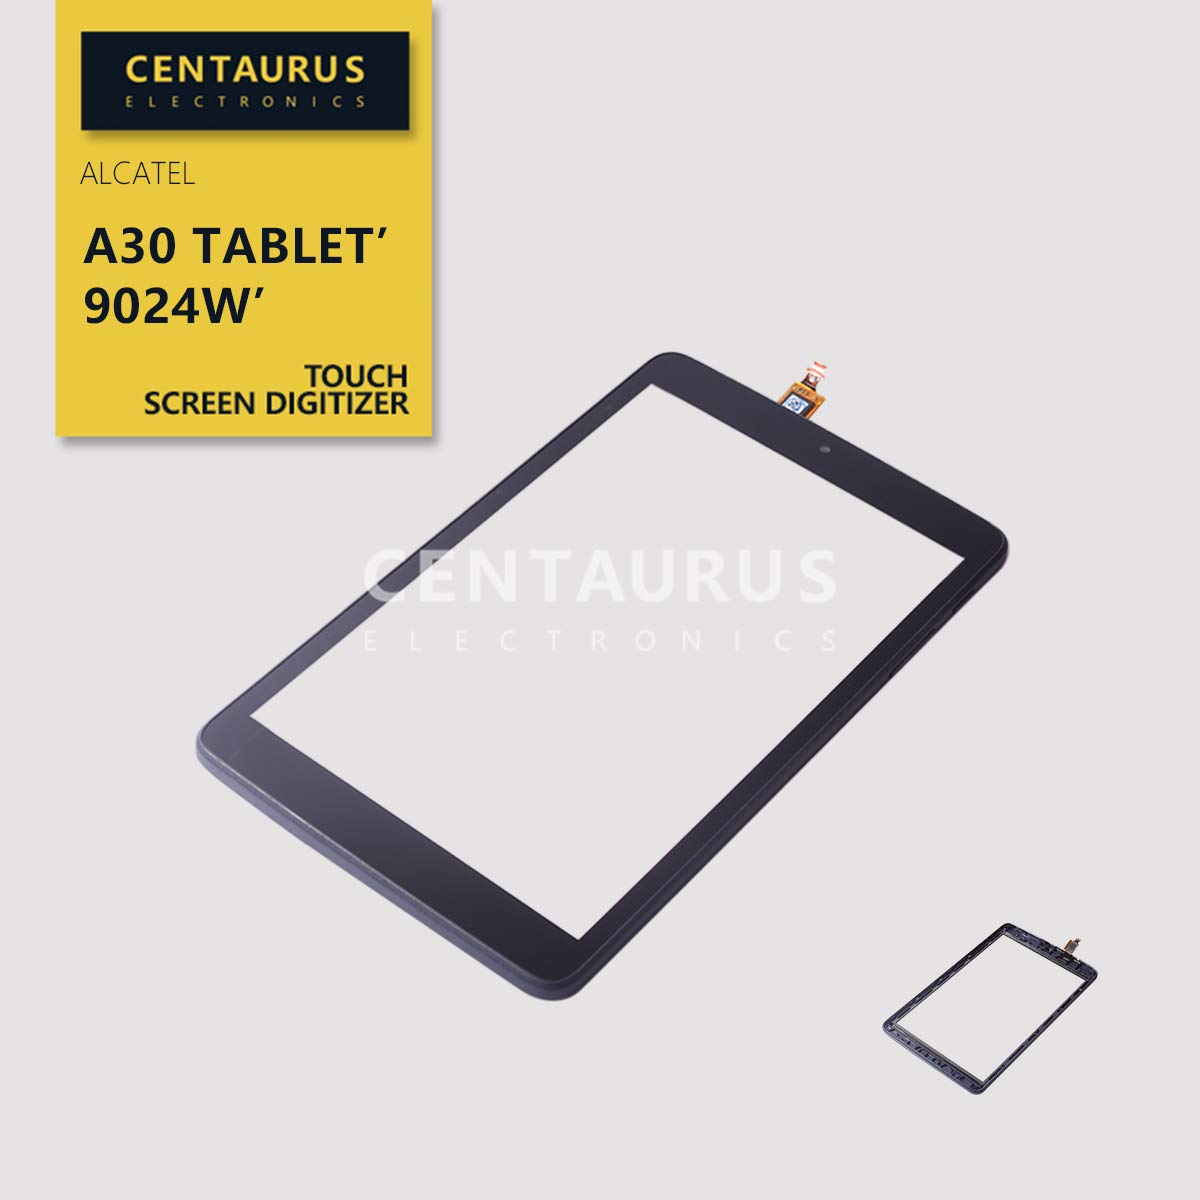 CENTAURUS Replacement for Alcatel A30 Tablet Front Touch Screen Digitizer with Frame (NO LCD) Part Compatible Alcatel A30 Tablet 2017 9024W T-Mobile 8.0 inch